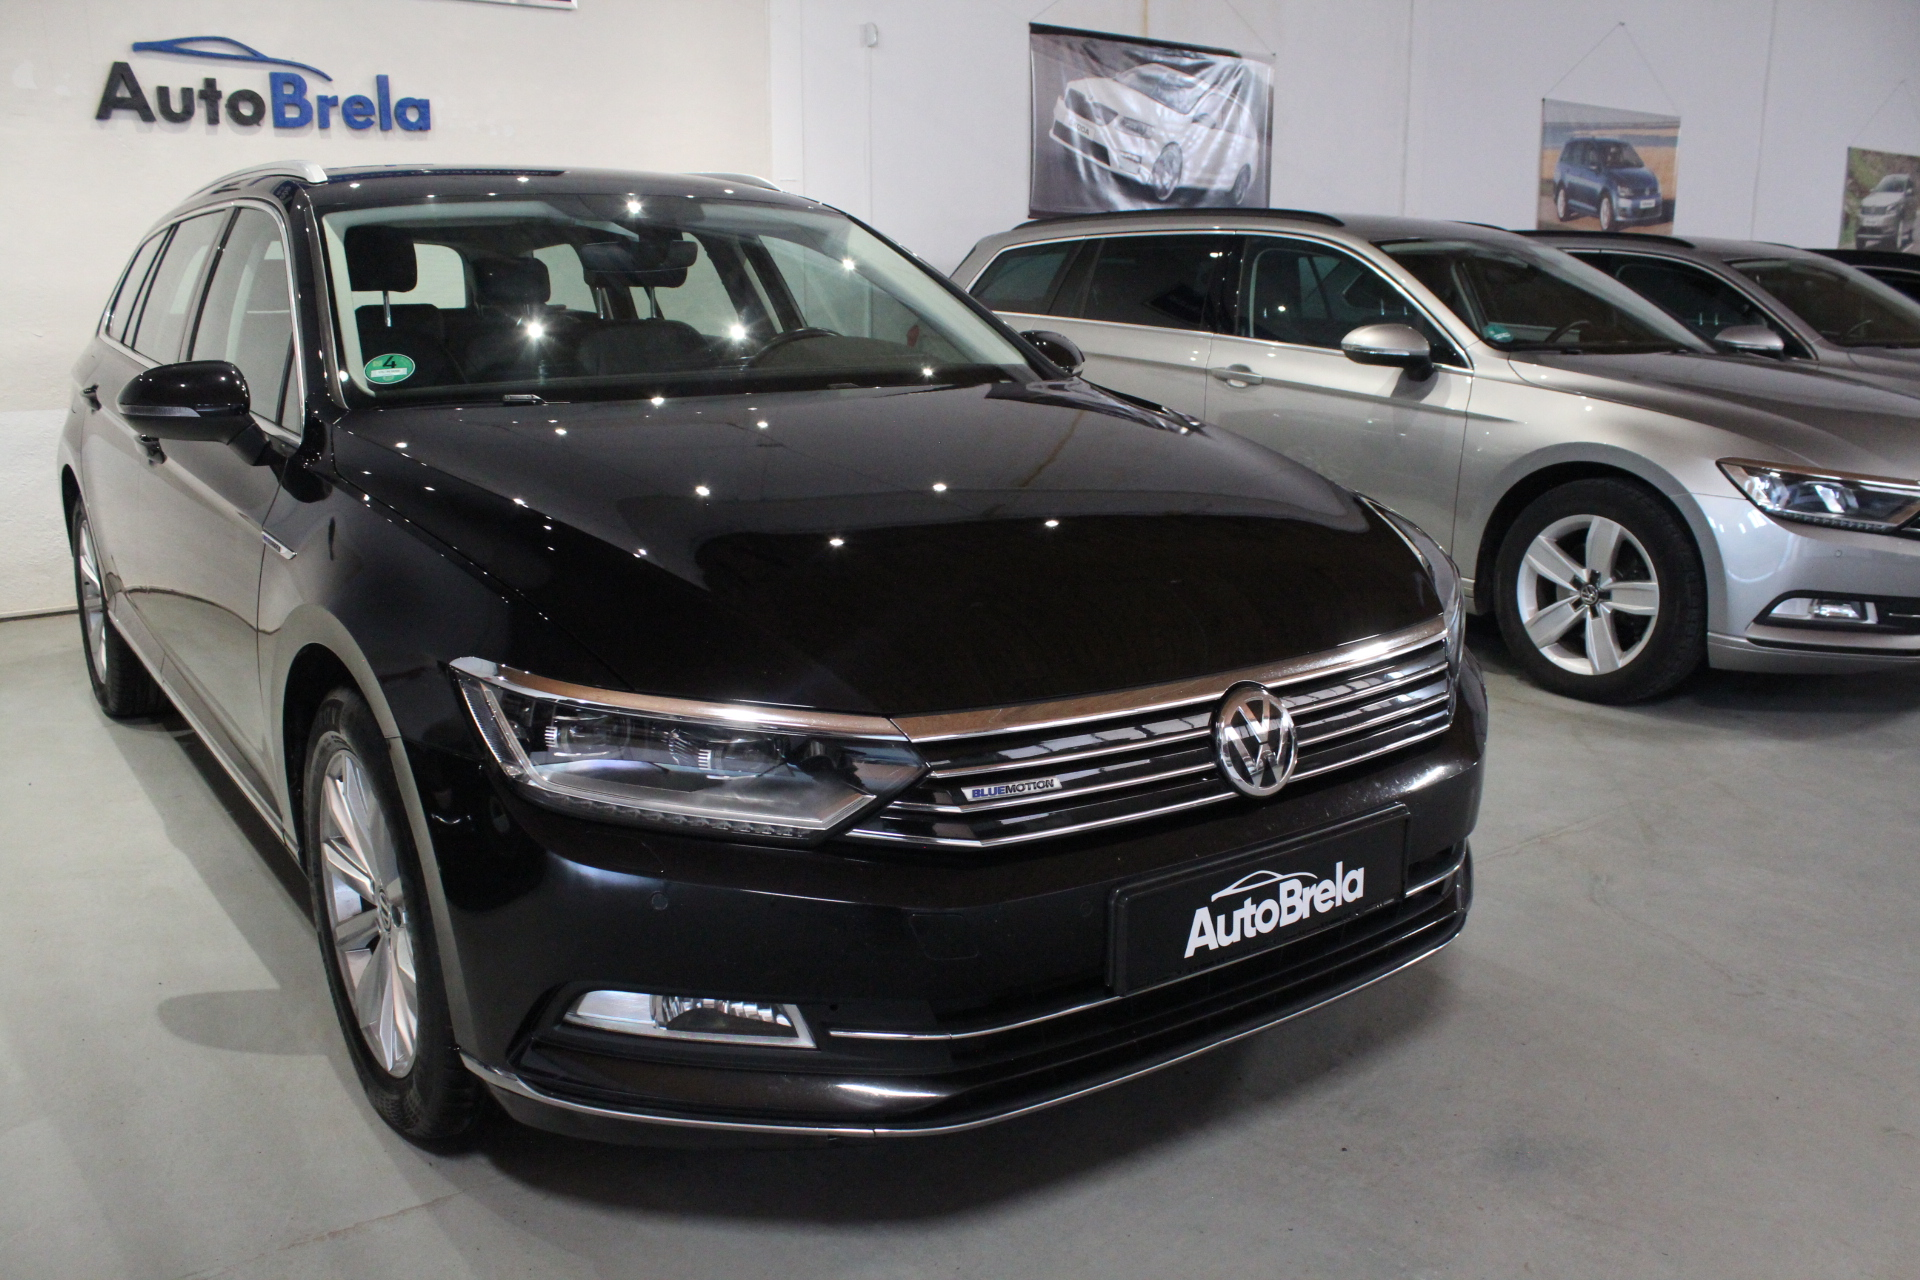 VW Passat B8 2.0 TDI DSG Highline Info display FULL LED - AutoBrela obrázek